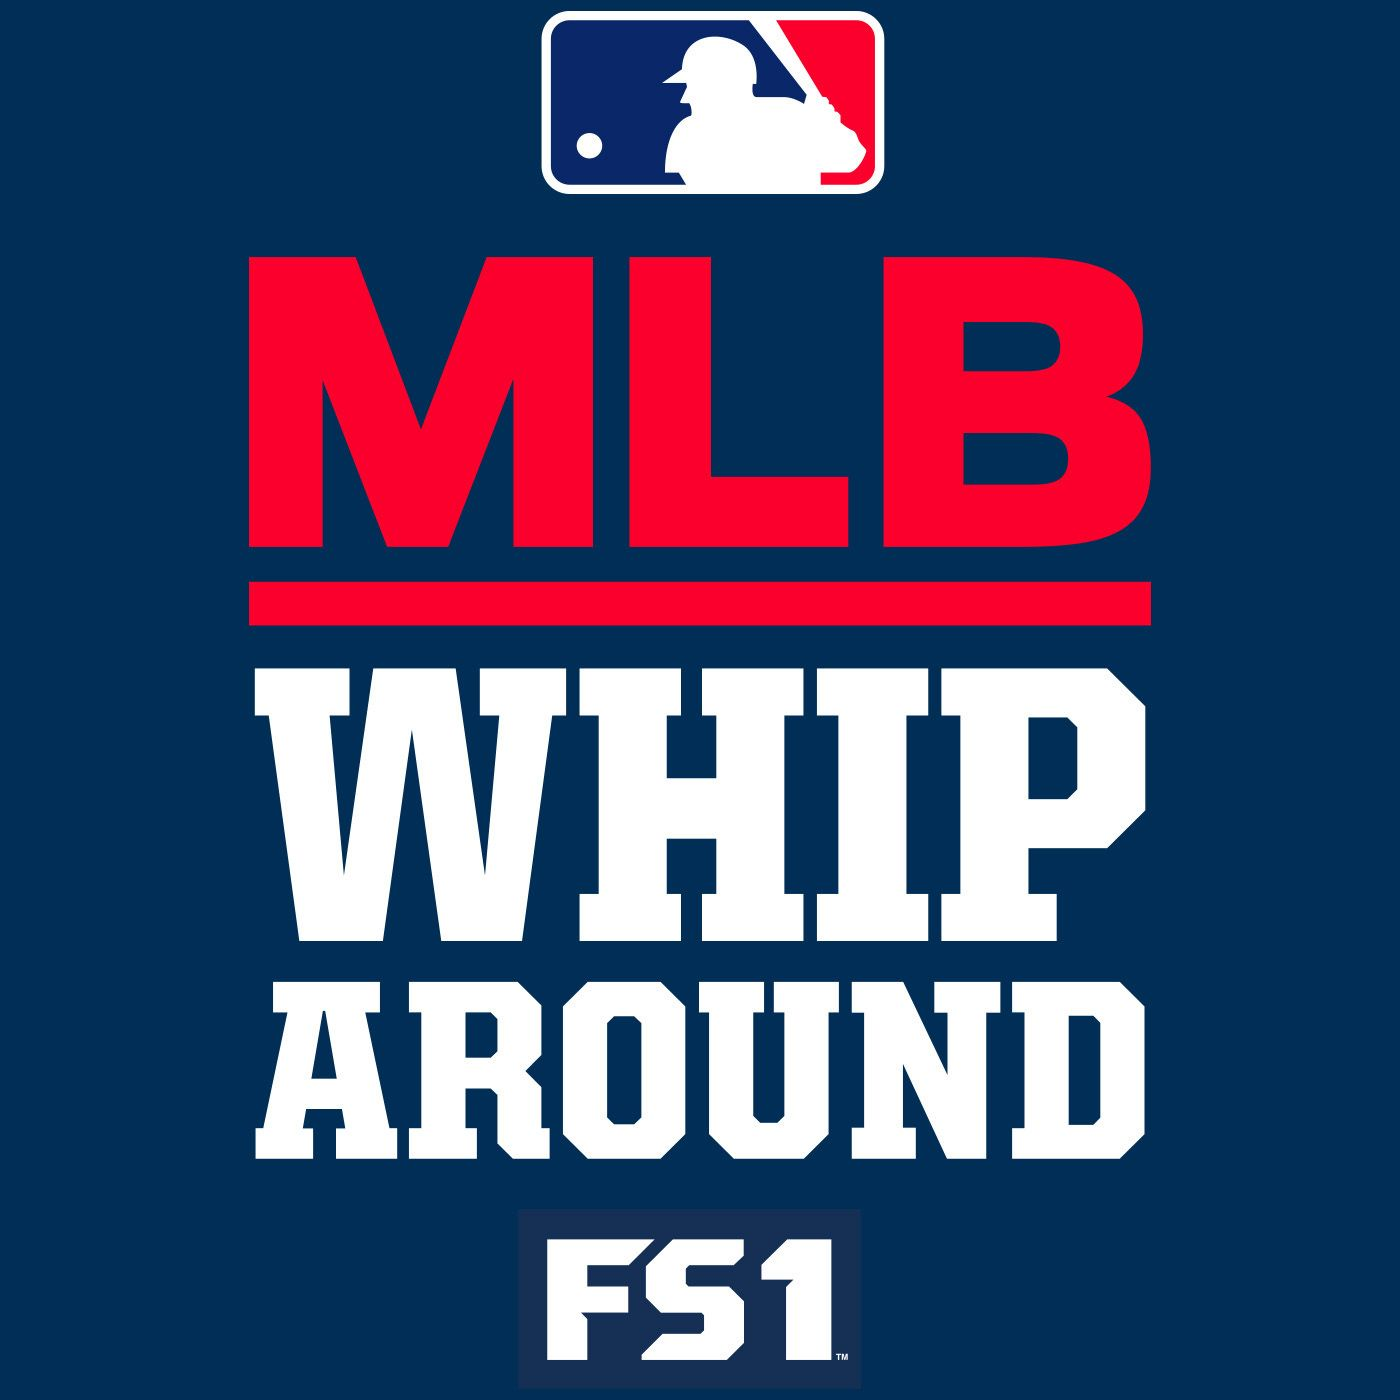 9/19 Dodgers, Yankees, Red Sox, Astros, Brewers